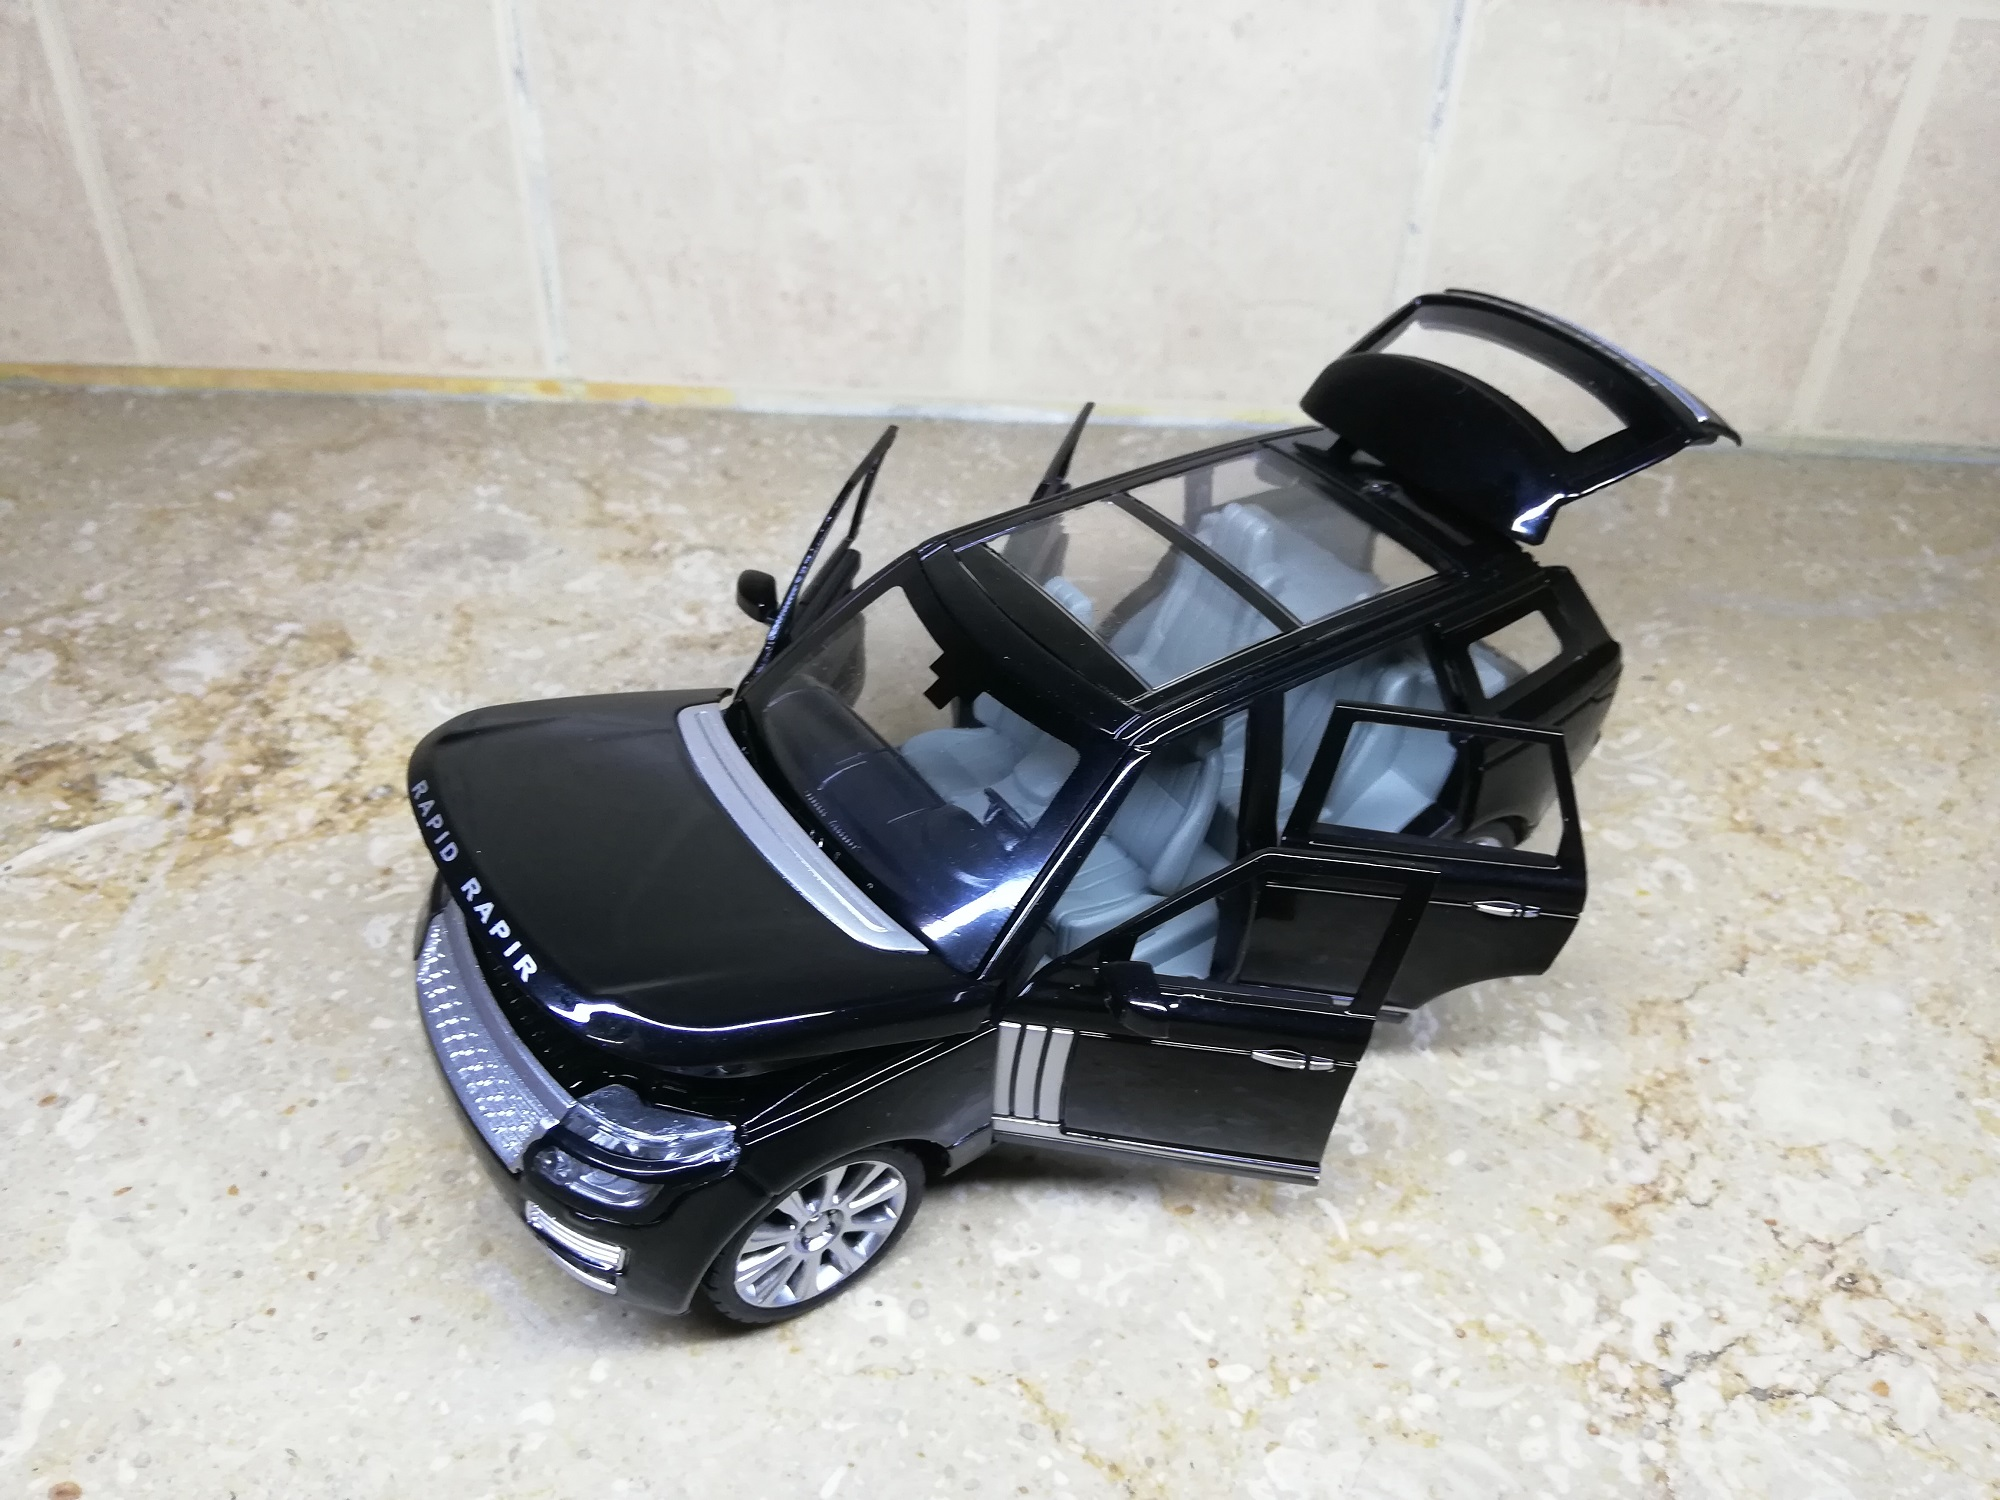 Range Rover / Rapid Rapir 1:24 XLG M923R DieCast Metal Model Cars Collectable Alloy Luxury Toy Car 8 inch Red Black die-cast